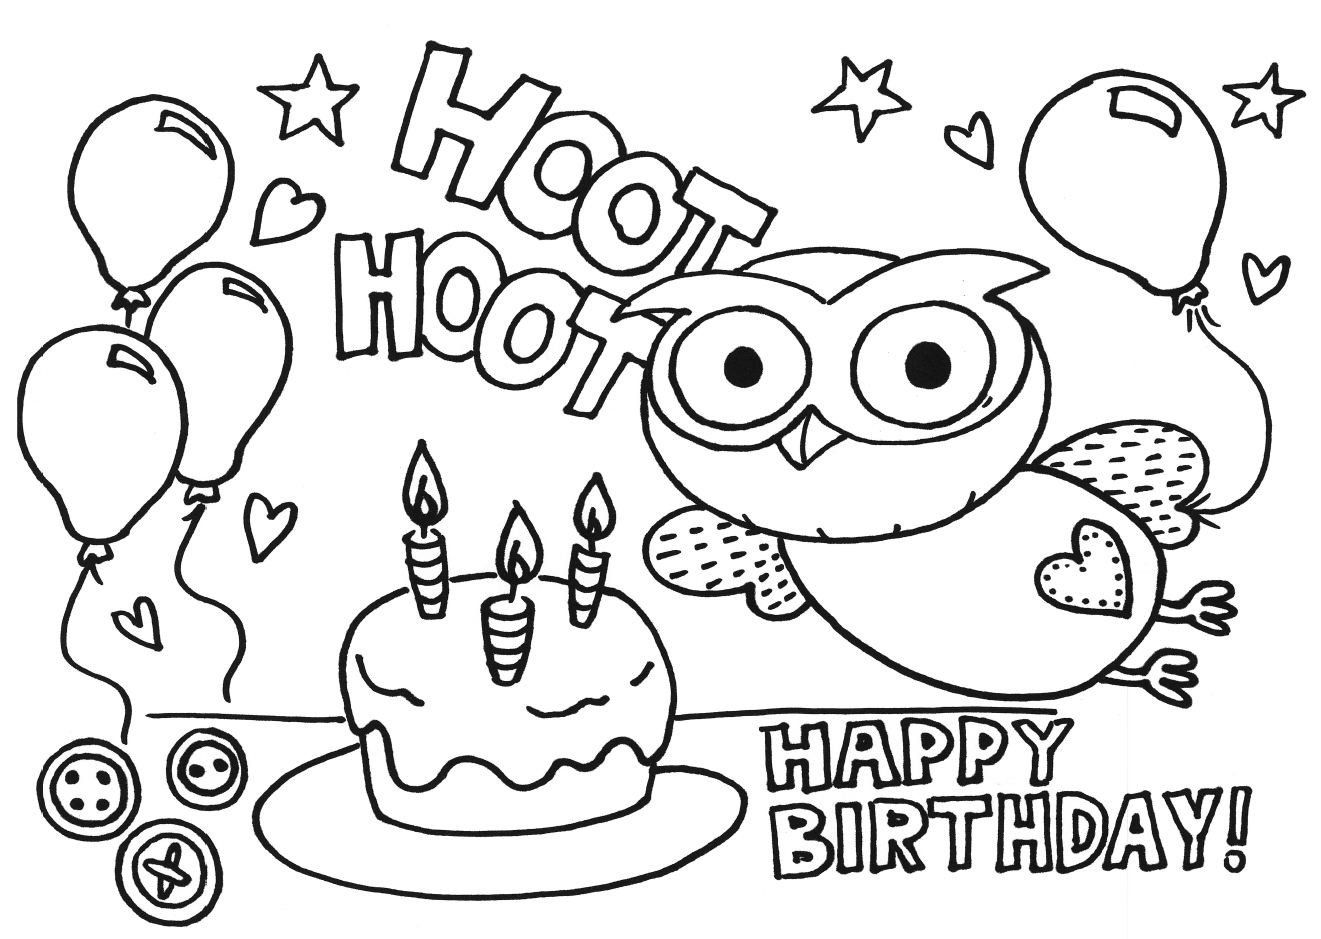 Owl Coloring Books For Adults Best Of Happy Birthday Owl Coloring Pages Happy Birthday Coloring Pages Birthday Coloring Pages Coloring Birthday Cards